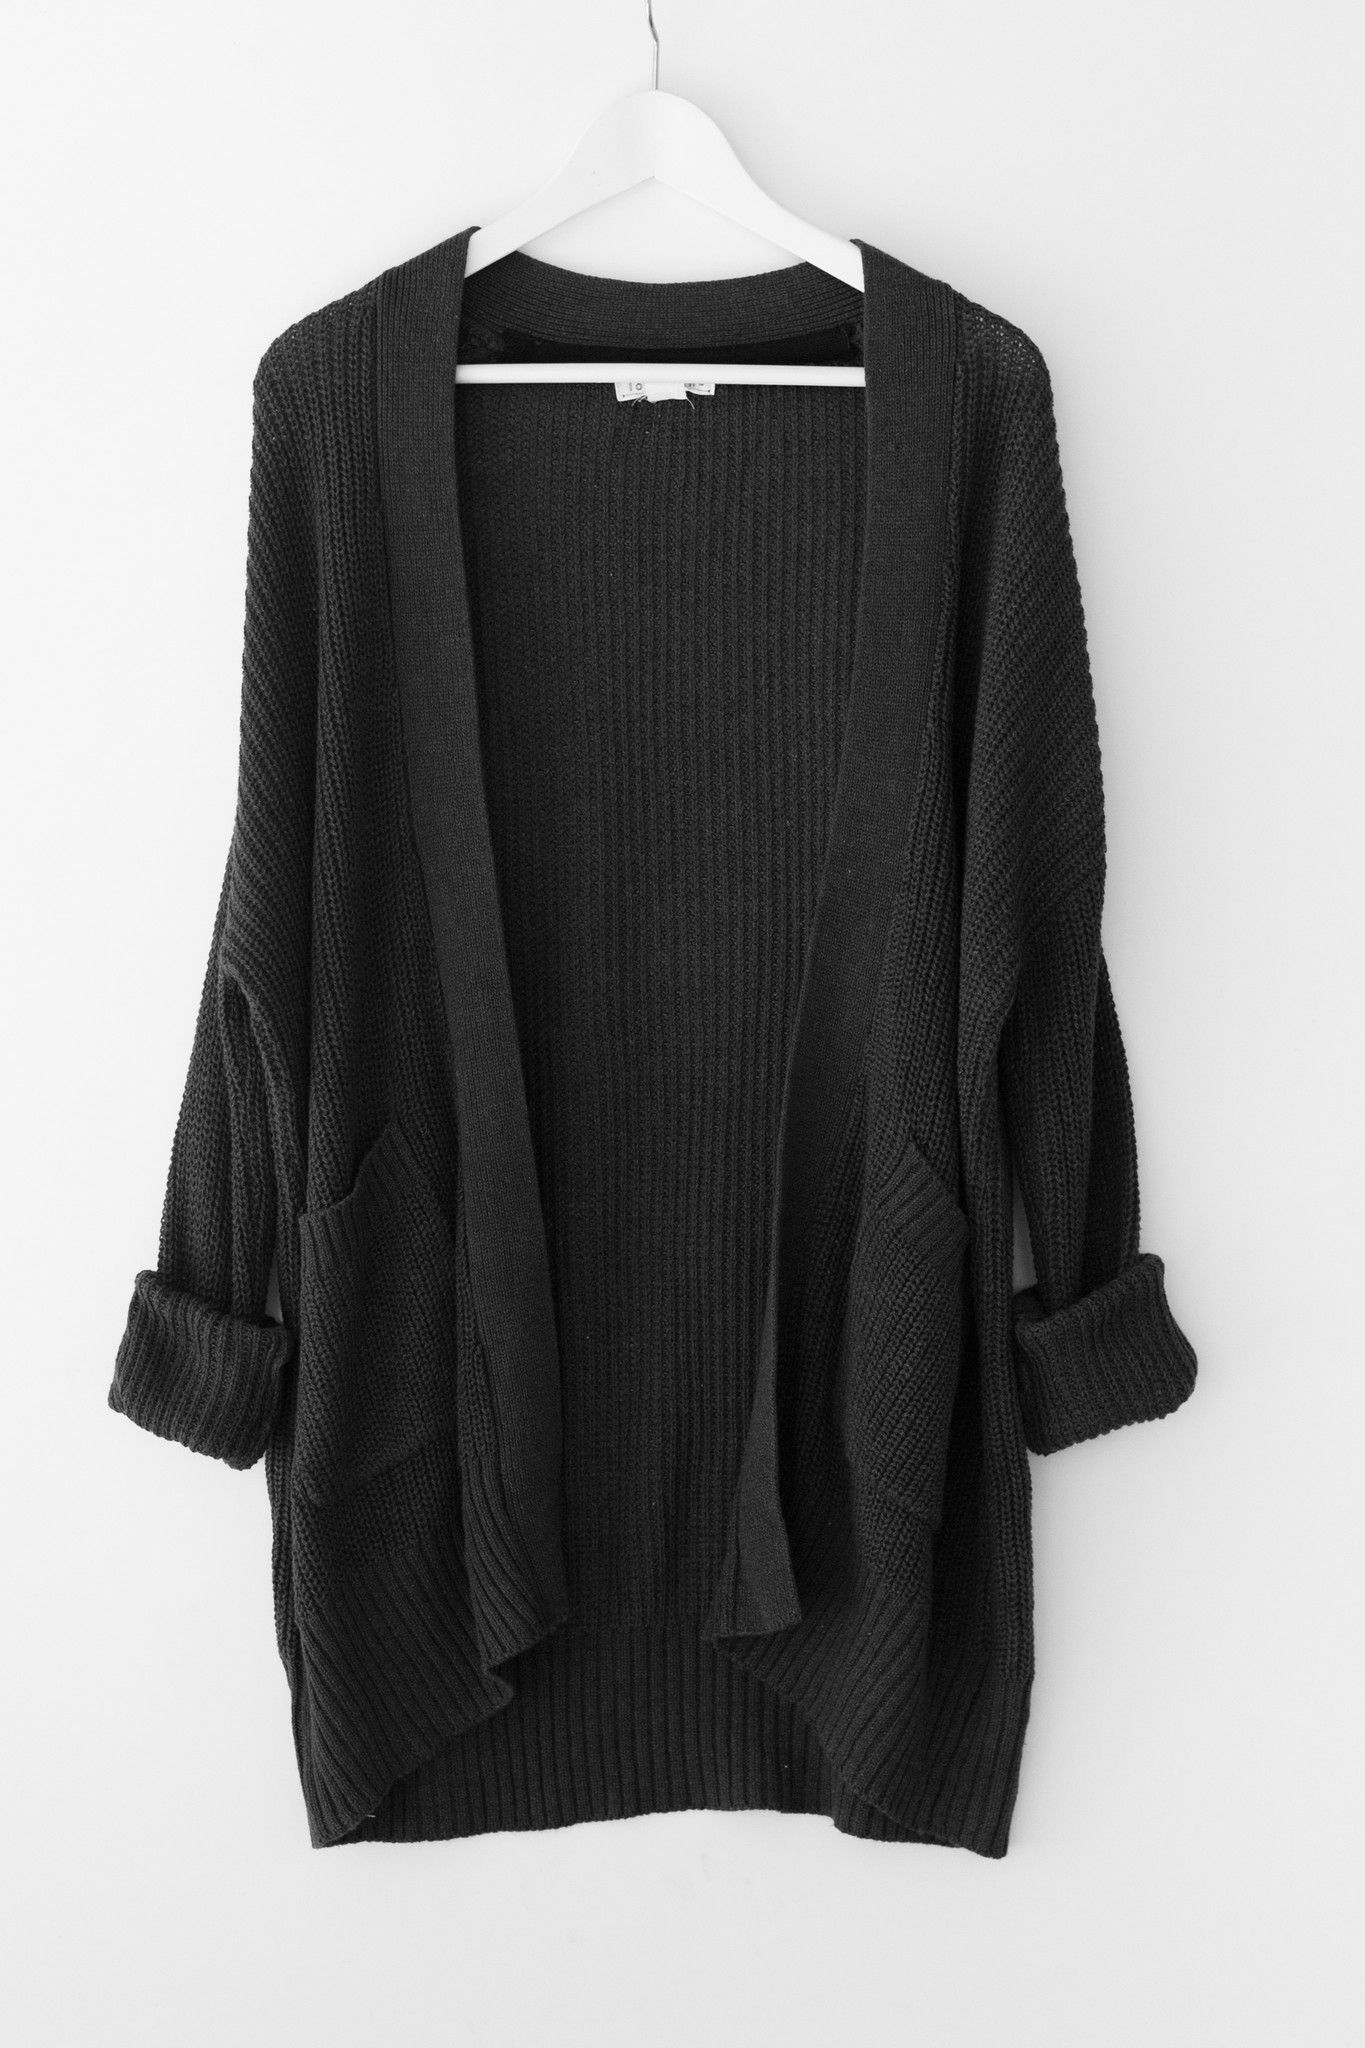 Chunky knitted cardigan with an open front - Large patched front ...